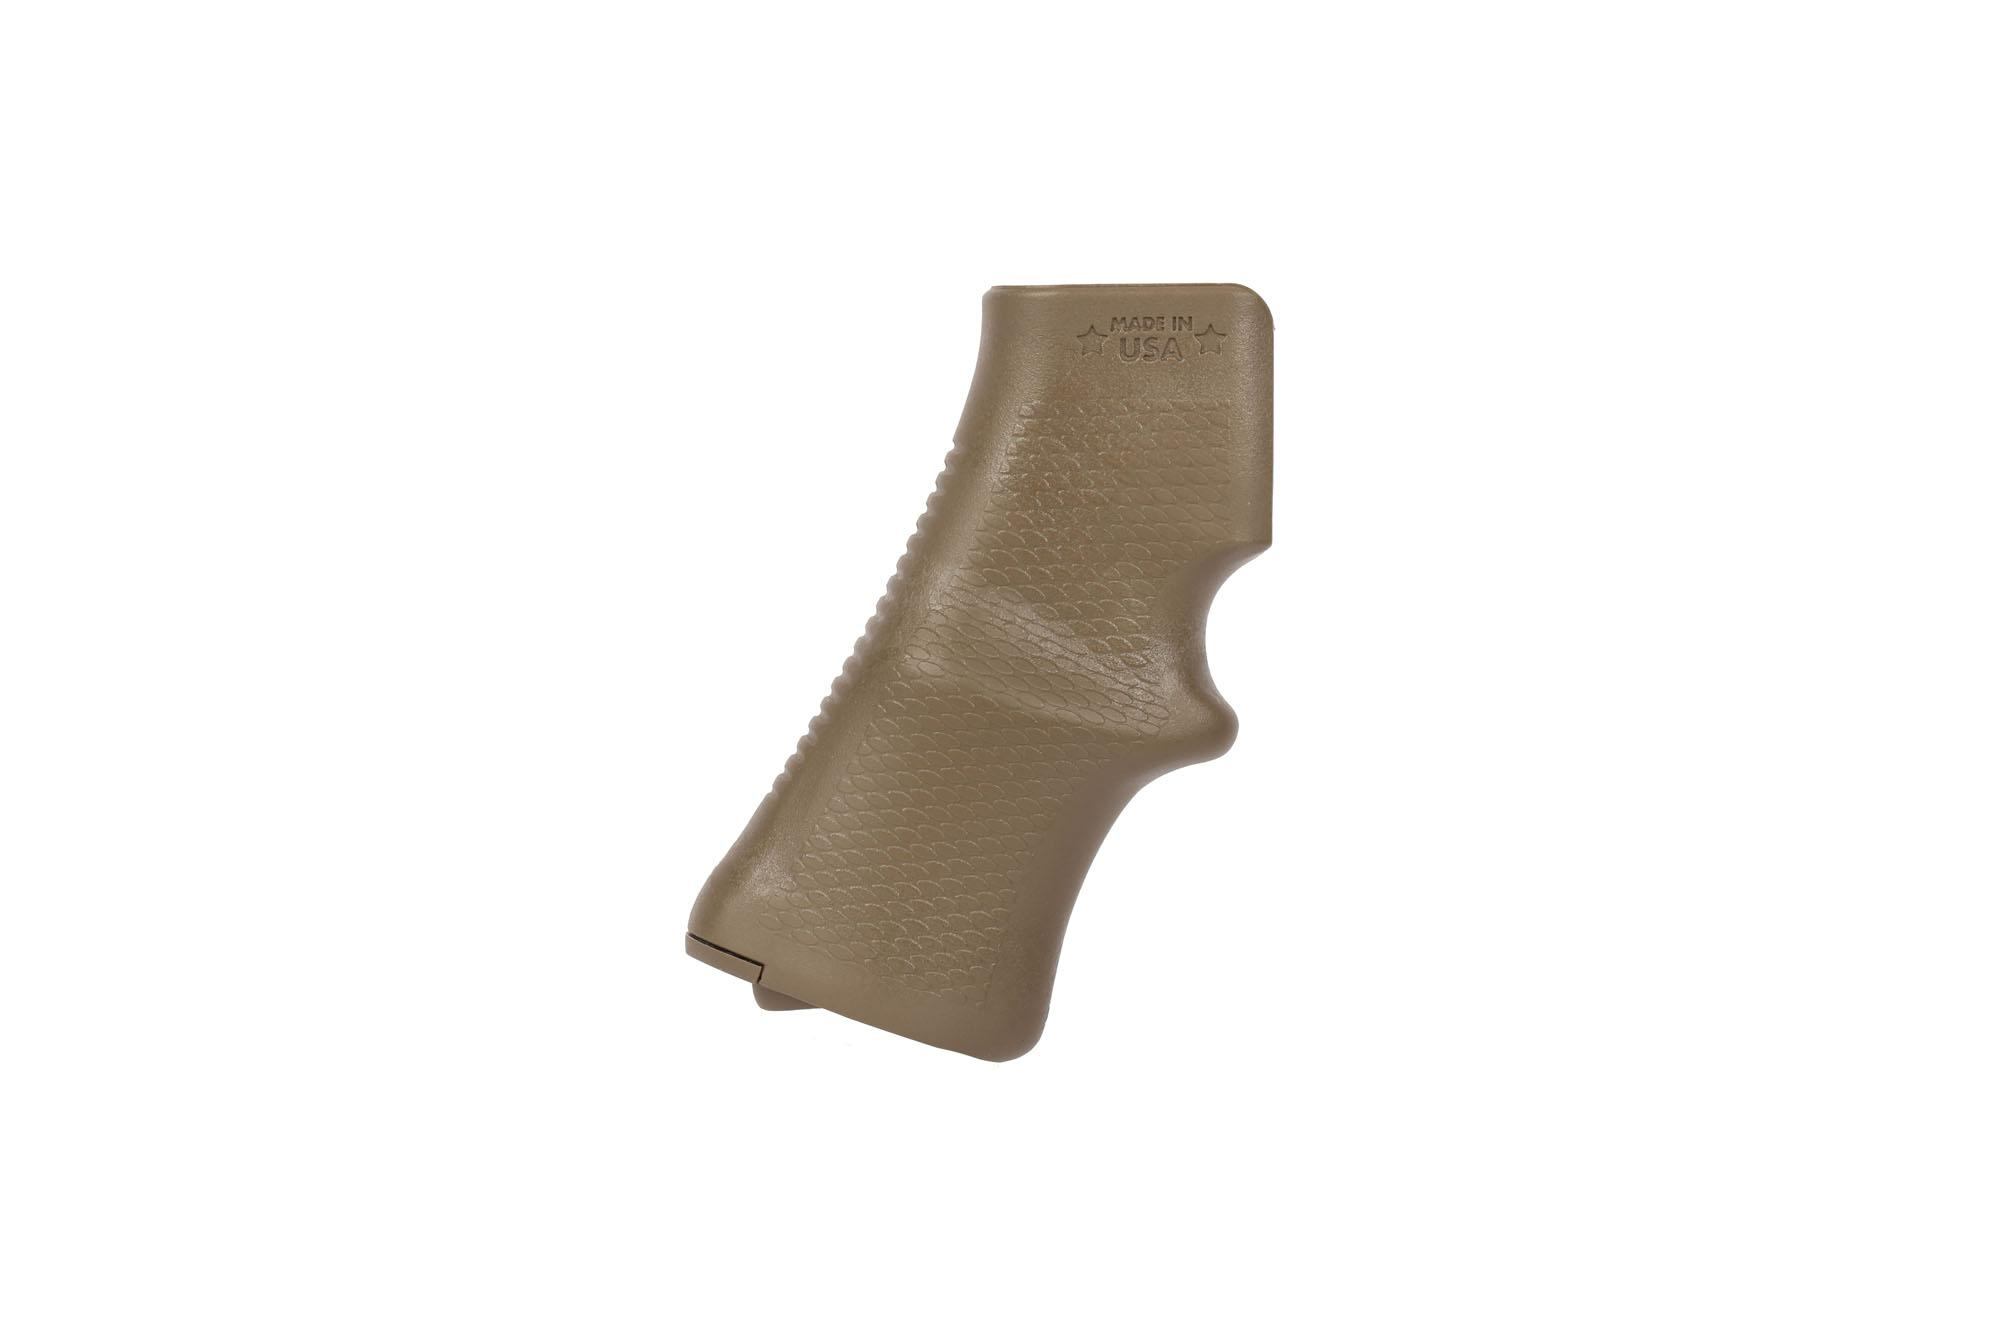 A*B Arms SBR P*Grip AR 15 Pistol Grip - Flat Dark Earth